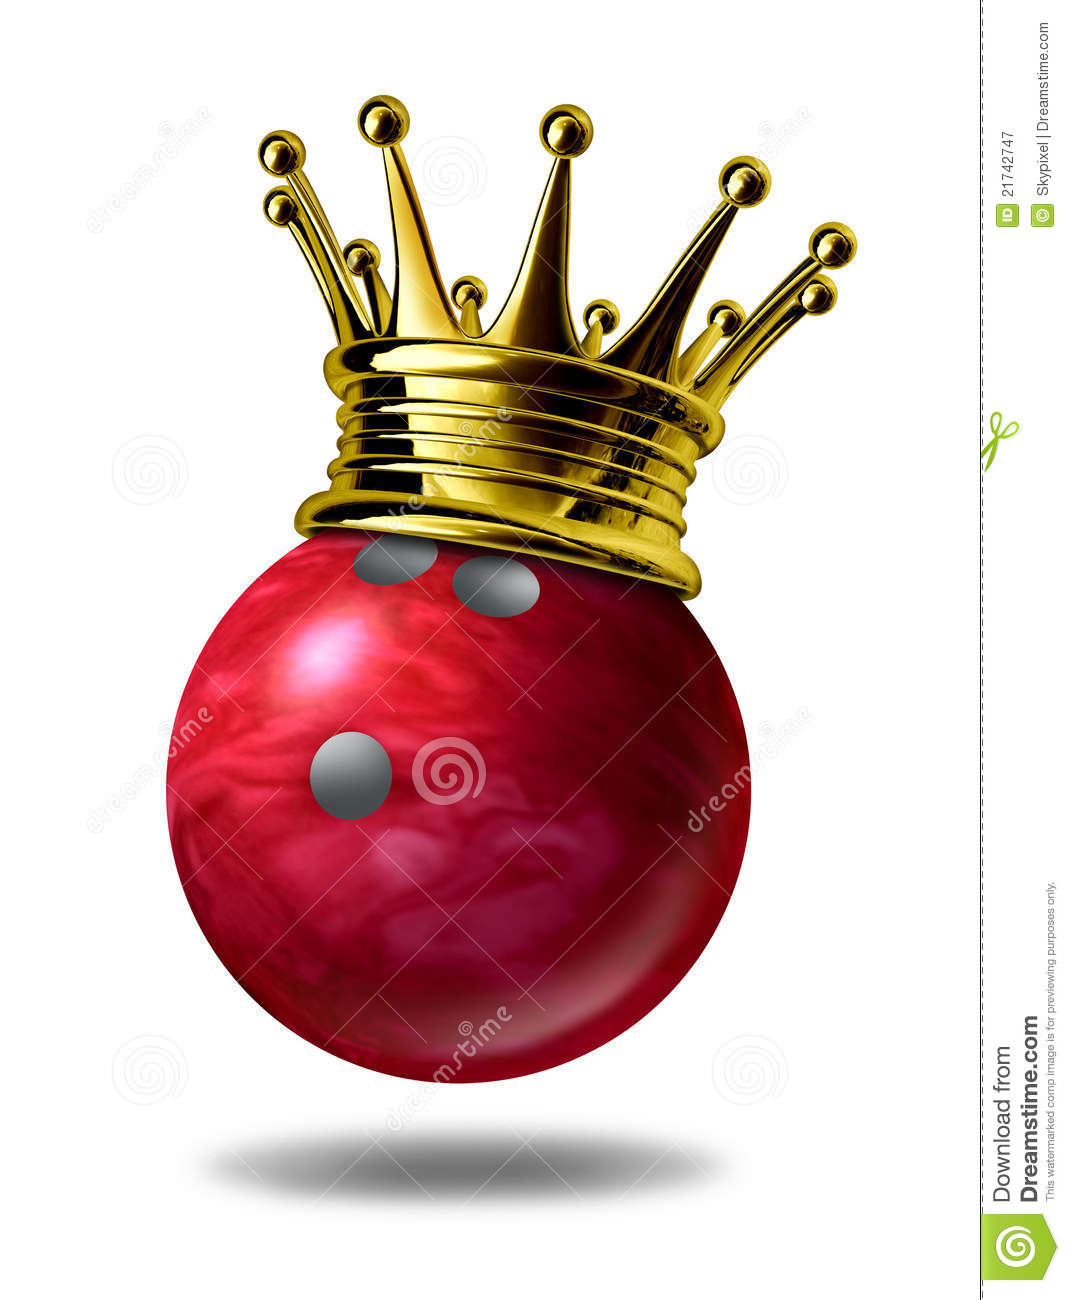 bowling king champion royalty free stock photography free crown clipart illustrations free crow clip art